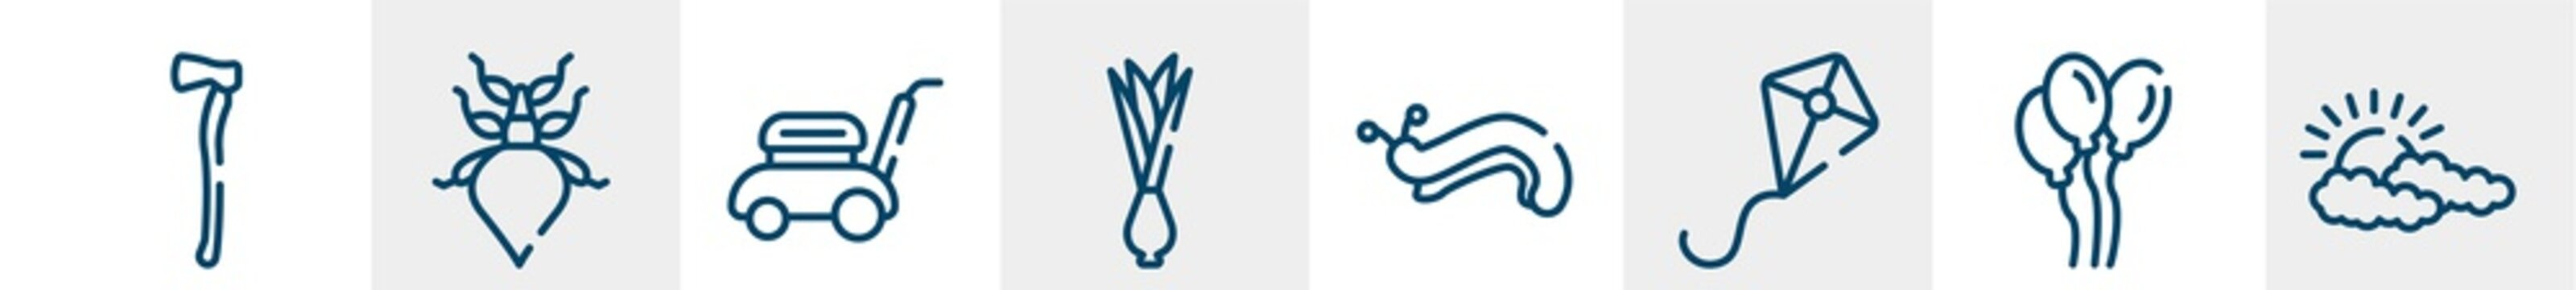 spring line icons such as axe, leaf insect, lawn mower, onion, slug, cloudy outline vector sign. symbol, logo illustration. linear style icons set. pixel perfect vector graphics.